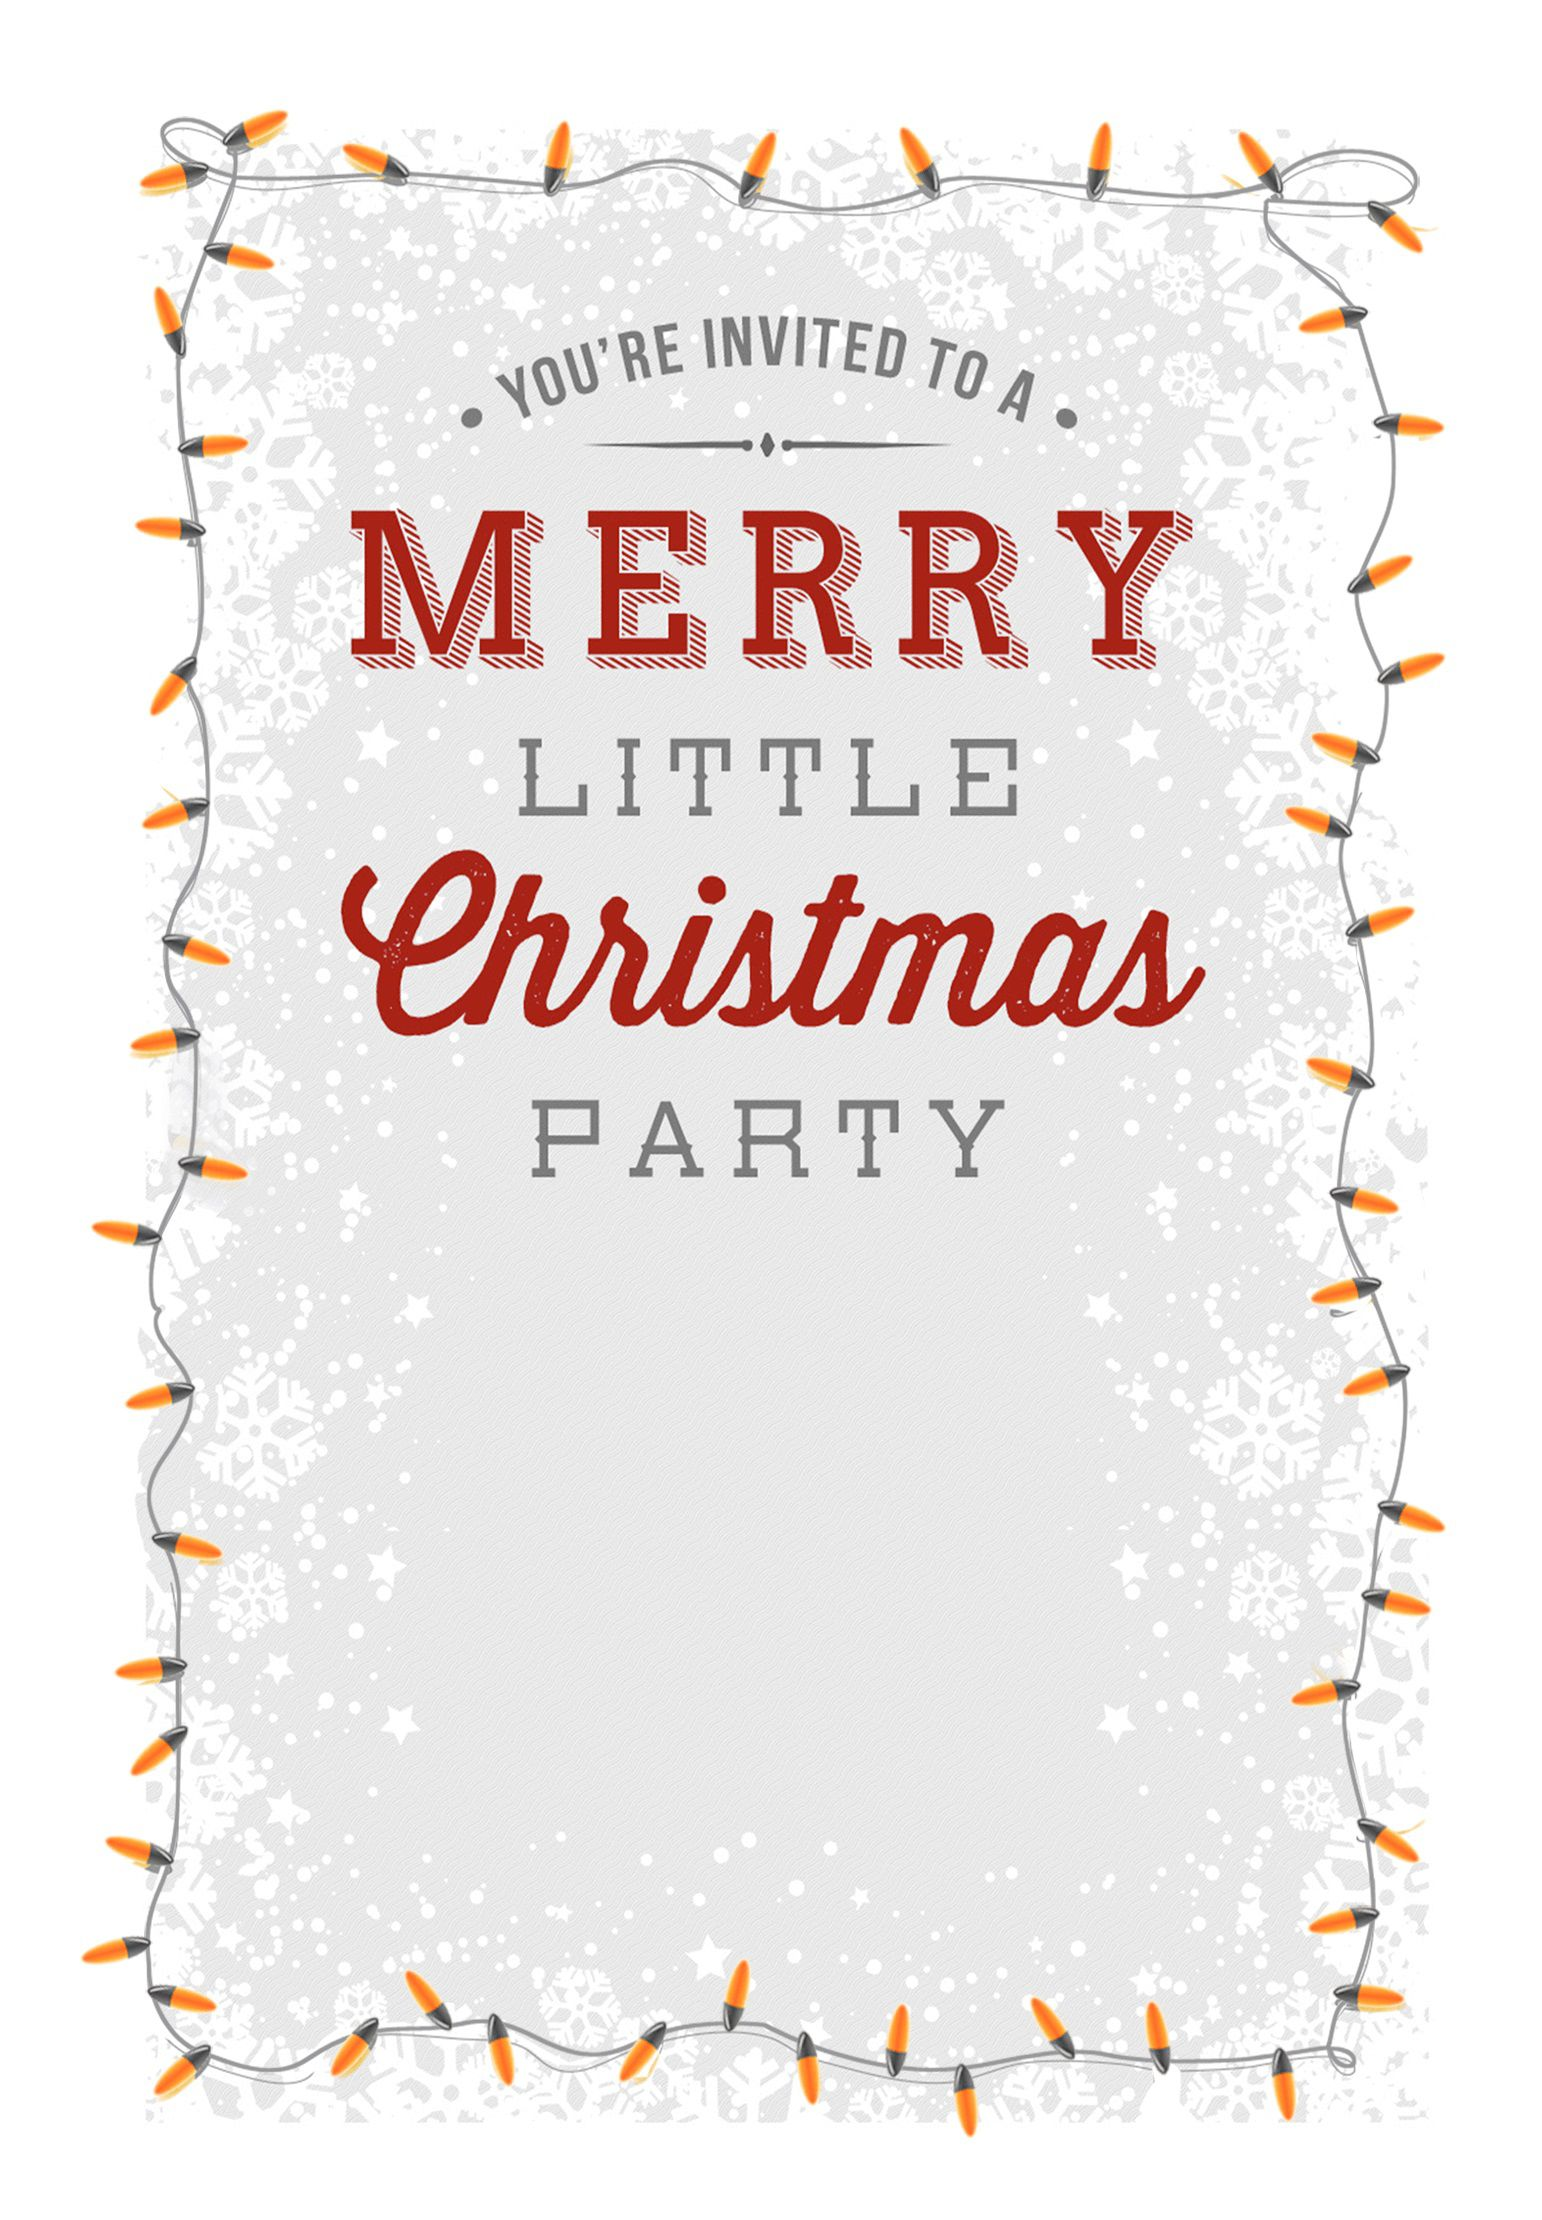 004 Outstanding Free Holiday Invite Template Picture  Templates Party Ticket For EmailFull